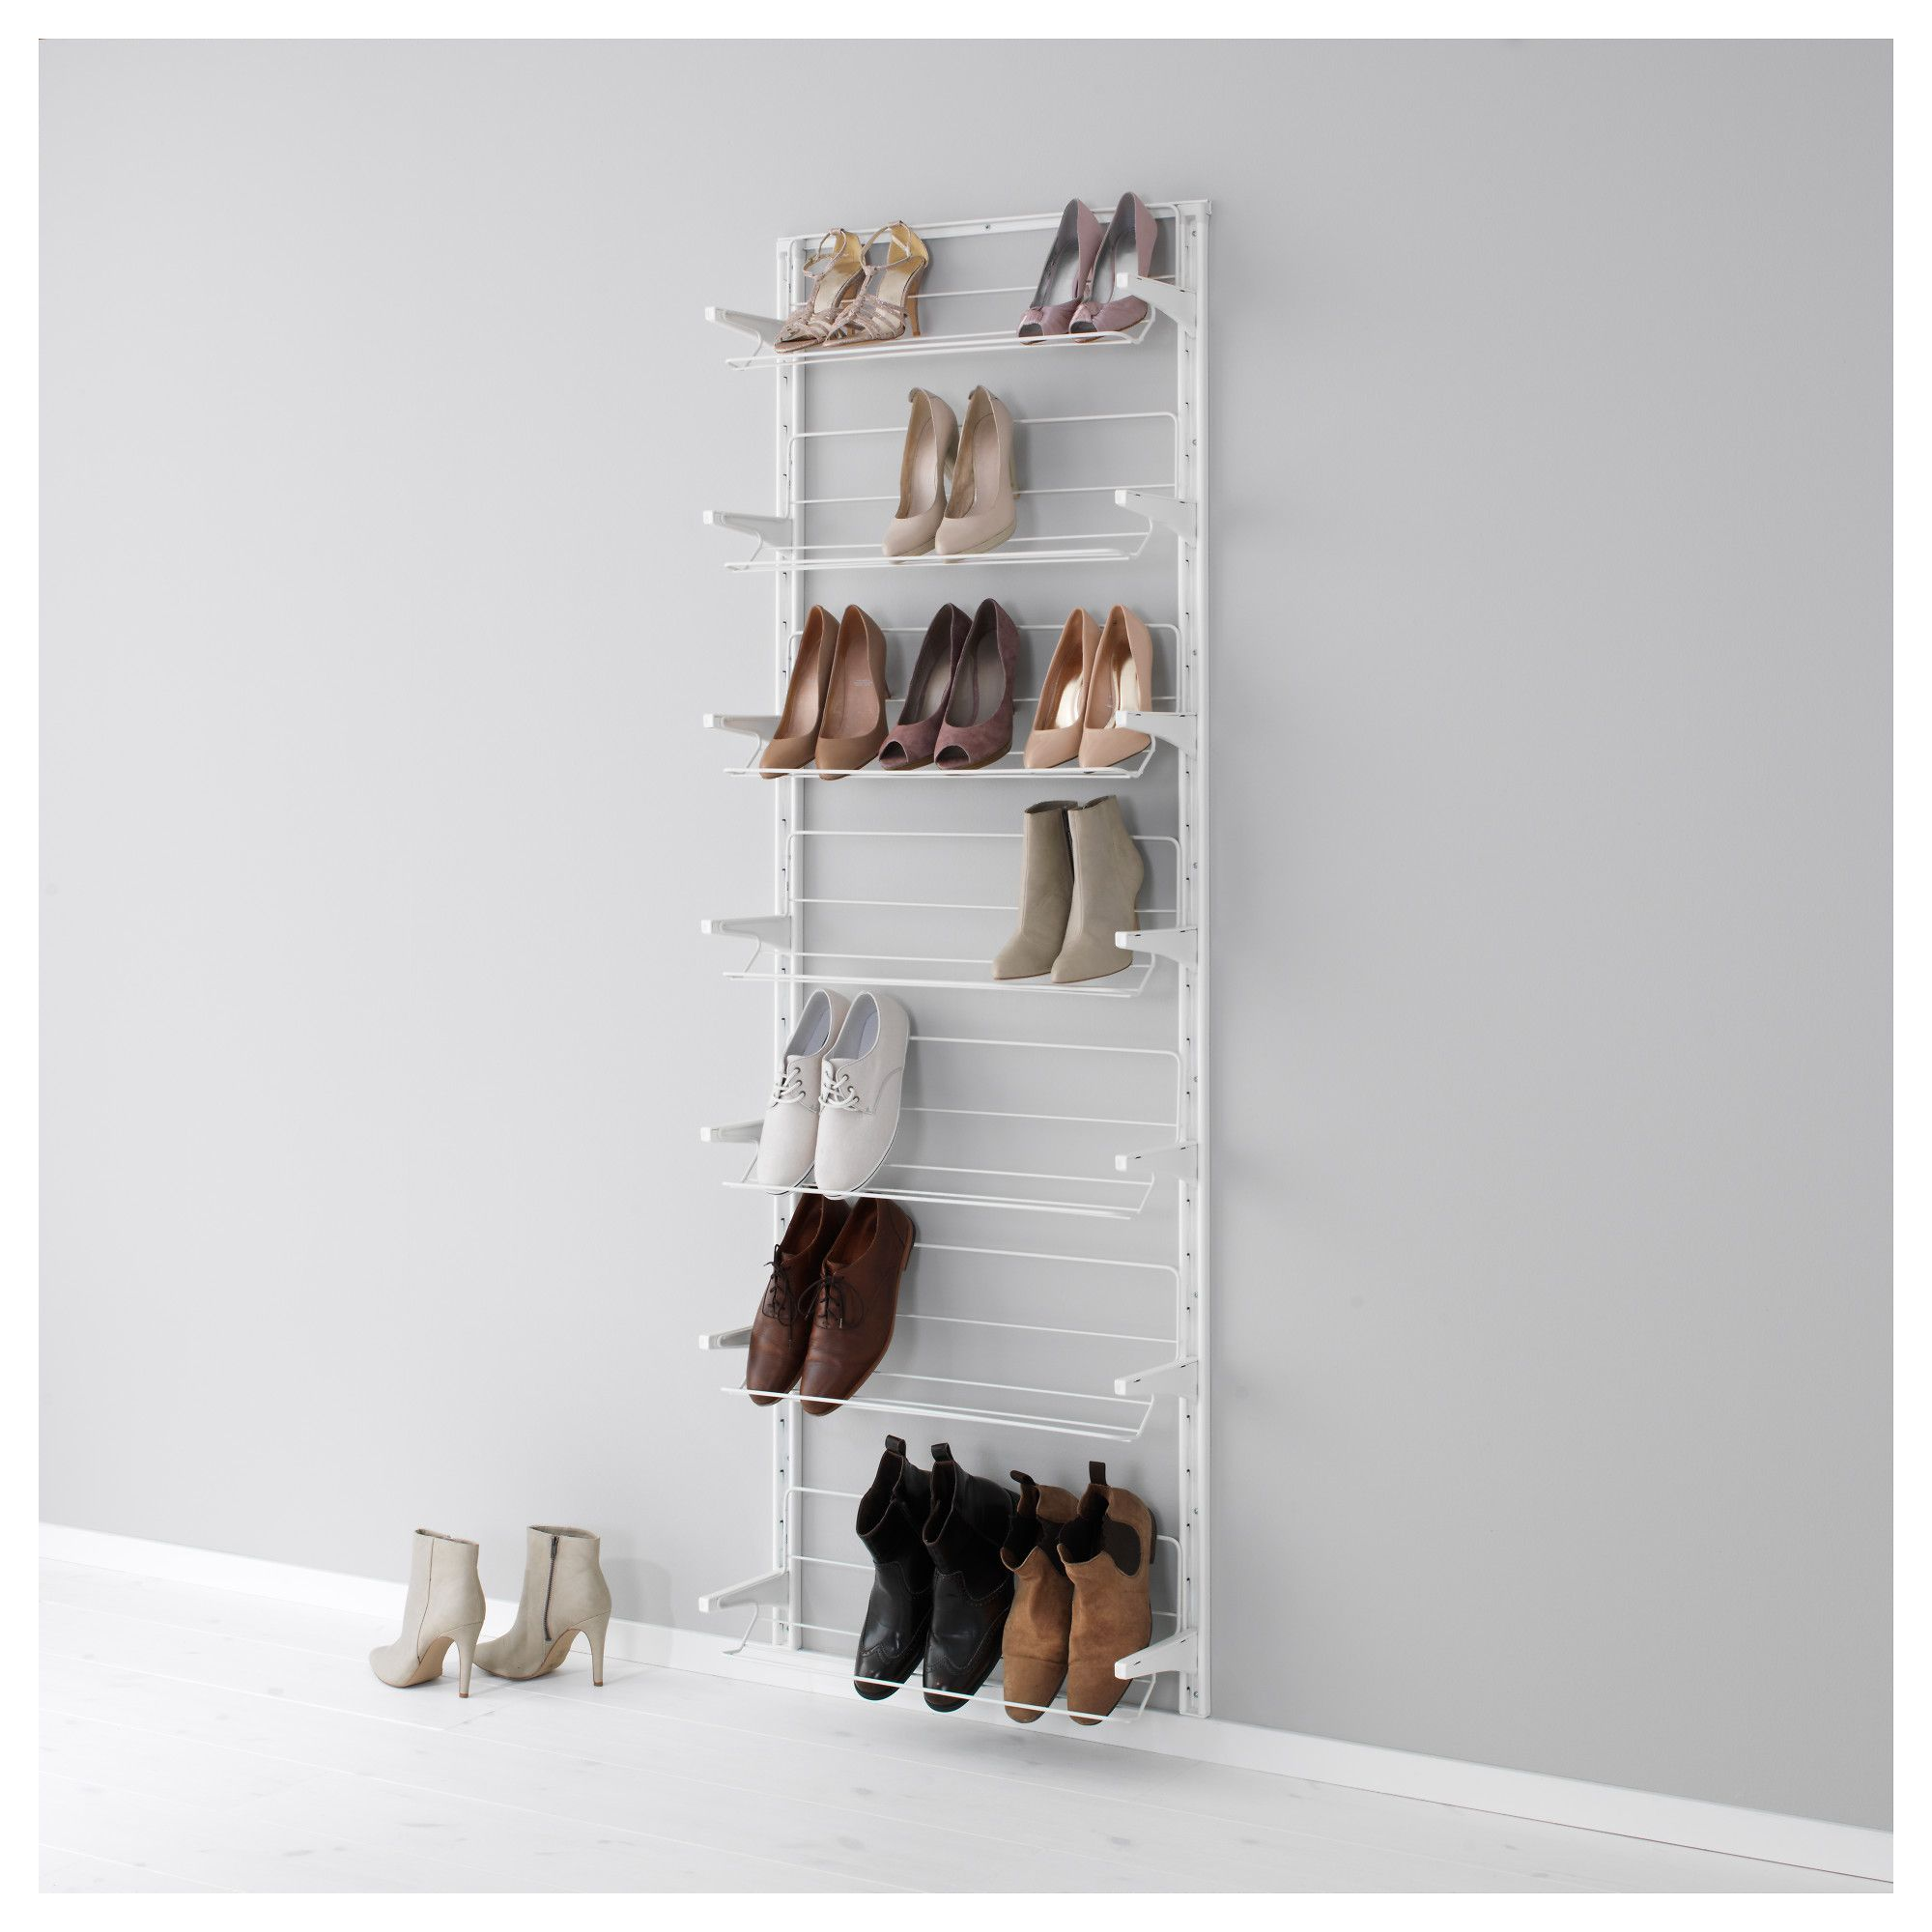 algot cr maill re range chaussures blanc shoes organizer ikea algot and walls